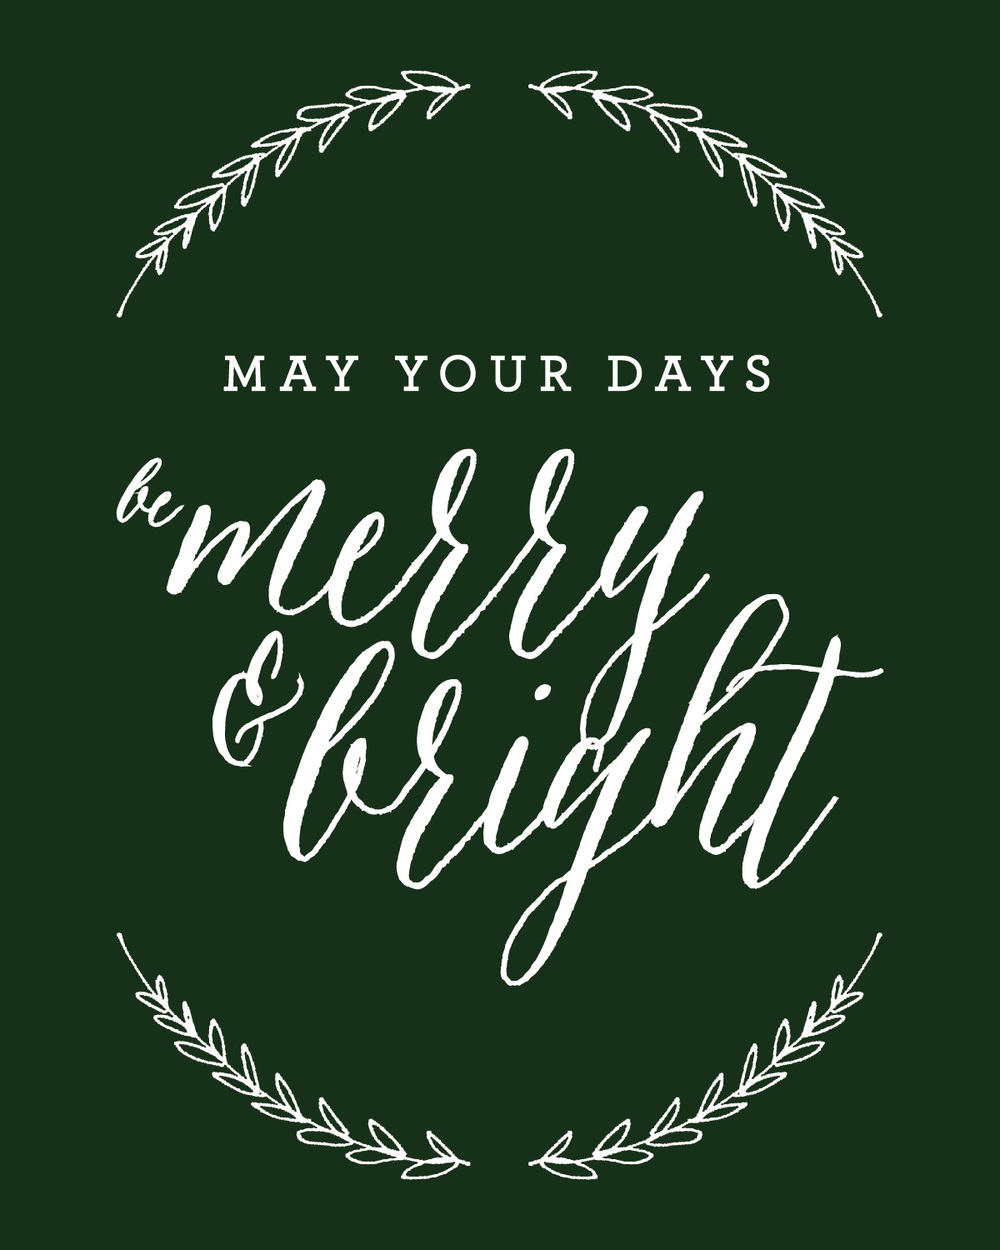 Merry & Bright | That's Pretty Ace